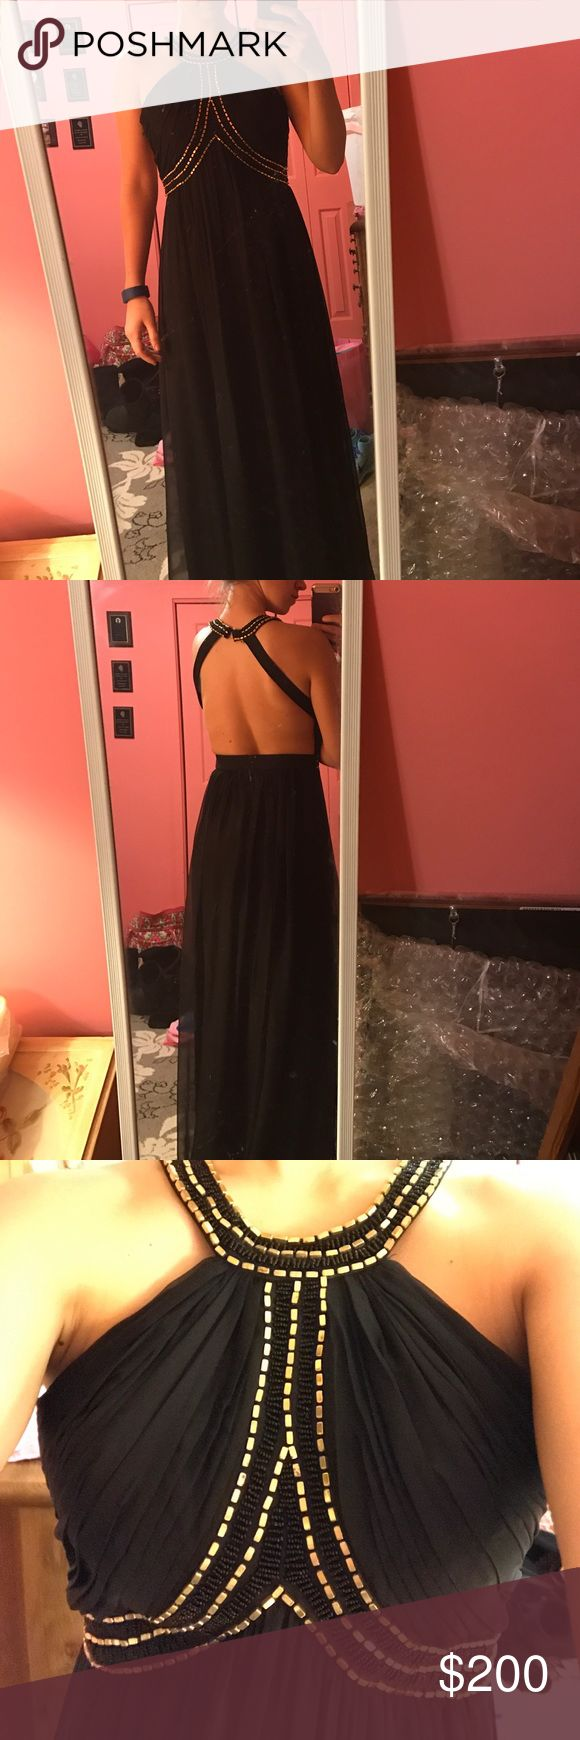 BEAUTIFUL PROM DRESS Black with gold beads beautiful dress. No stains, tears, or rips. Worn once and is in perfect condition for another prom or fancy event. By Bariano Australia bariano australia Dresses Prom